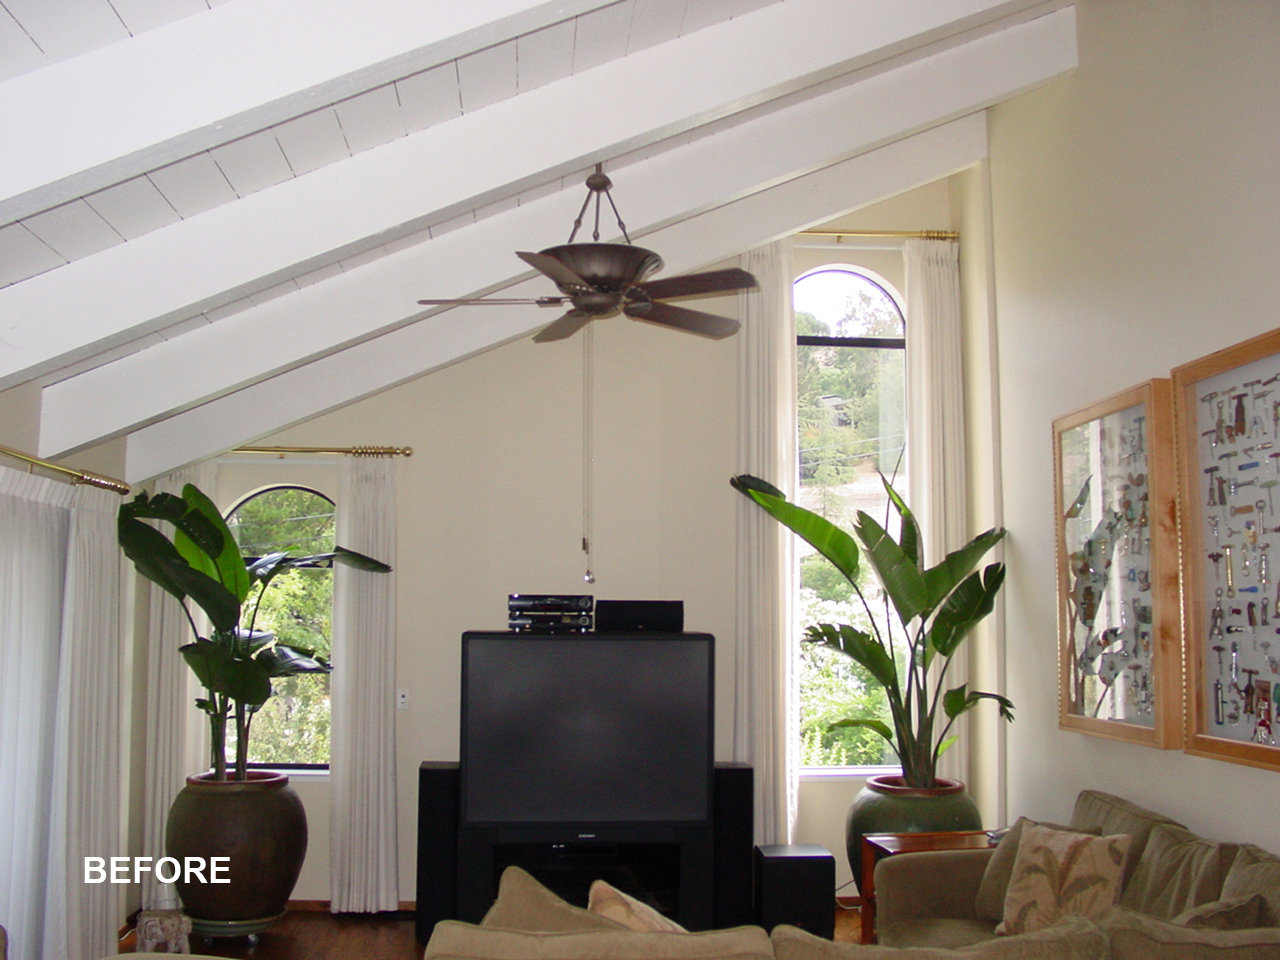 Kaplan-Architects-Lafayette-remodel-family-room-before-view.jpg